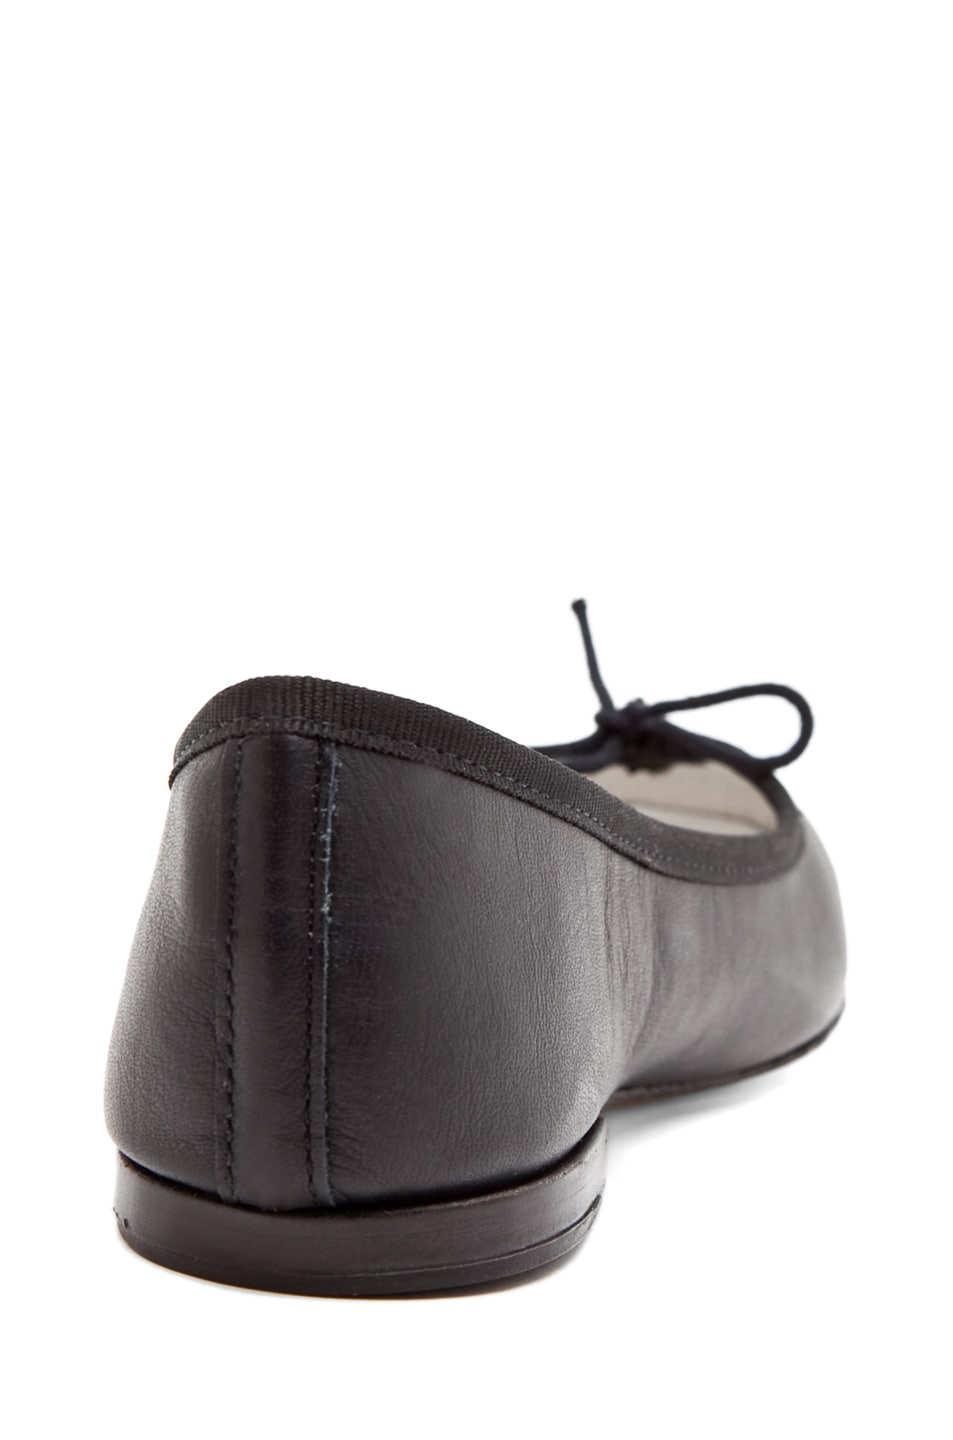 Image 3 of Repetto Calfskin Leather Flats in Black